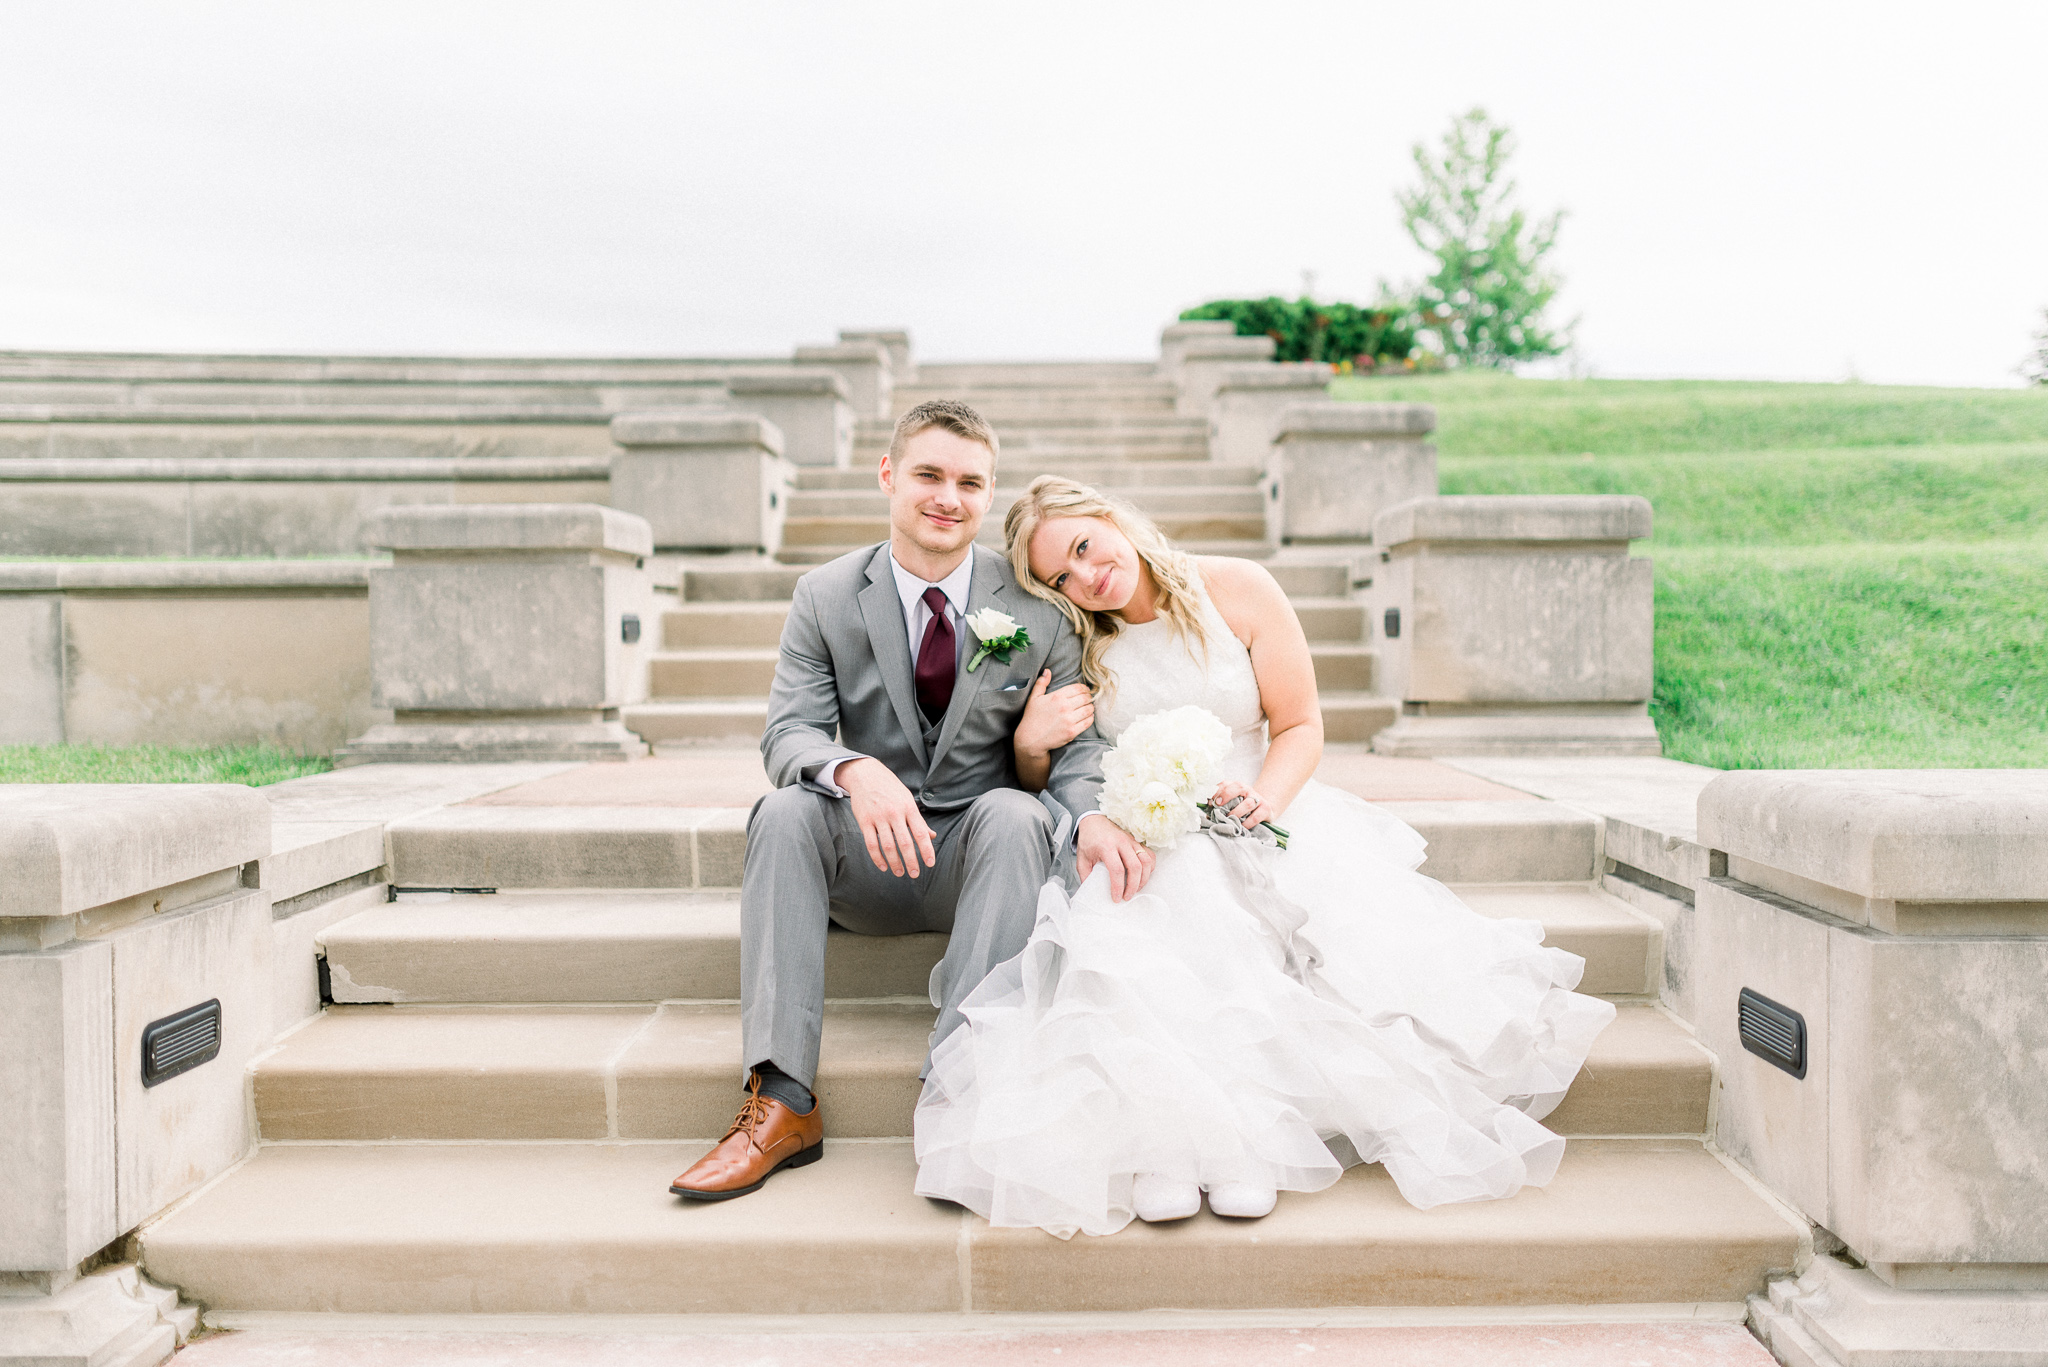 Courtney + Tanner | A Fresh Sunday Morning Elopement on Race Day at Coxhall Gardens in Carmel, Indiana | Indianapolis Wedding Photographers